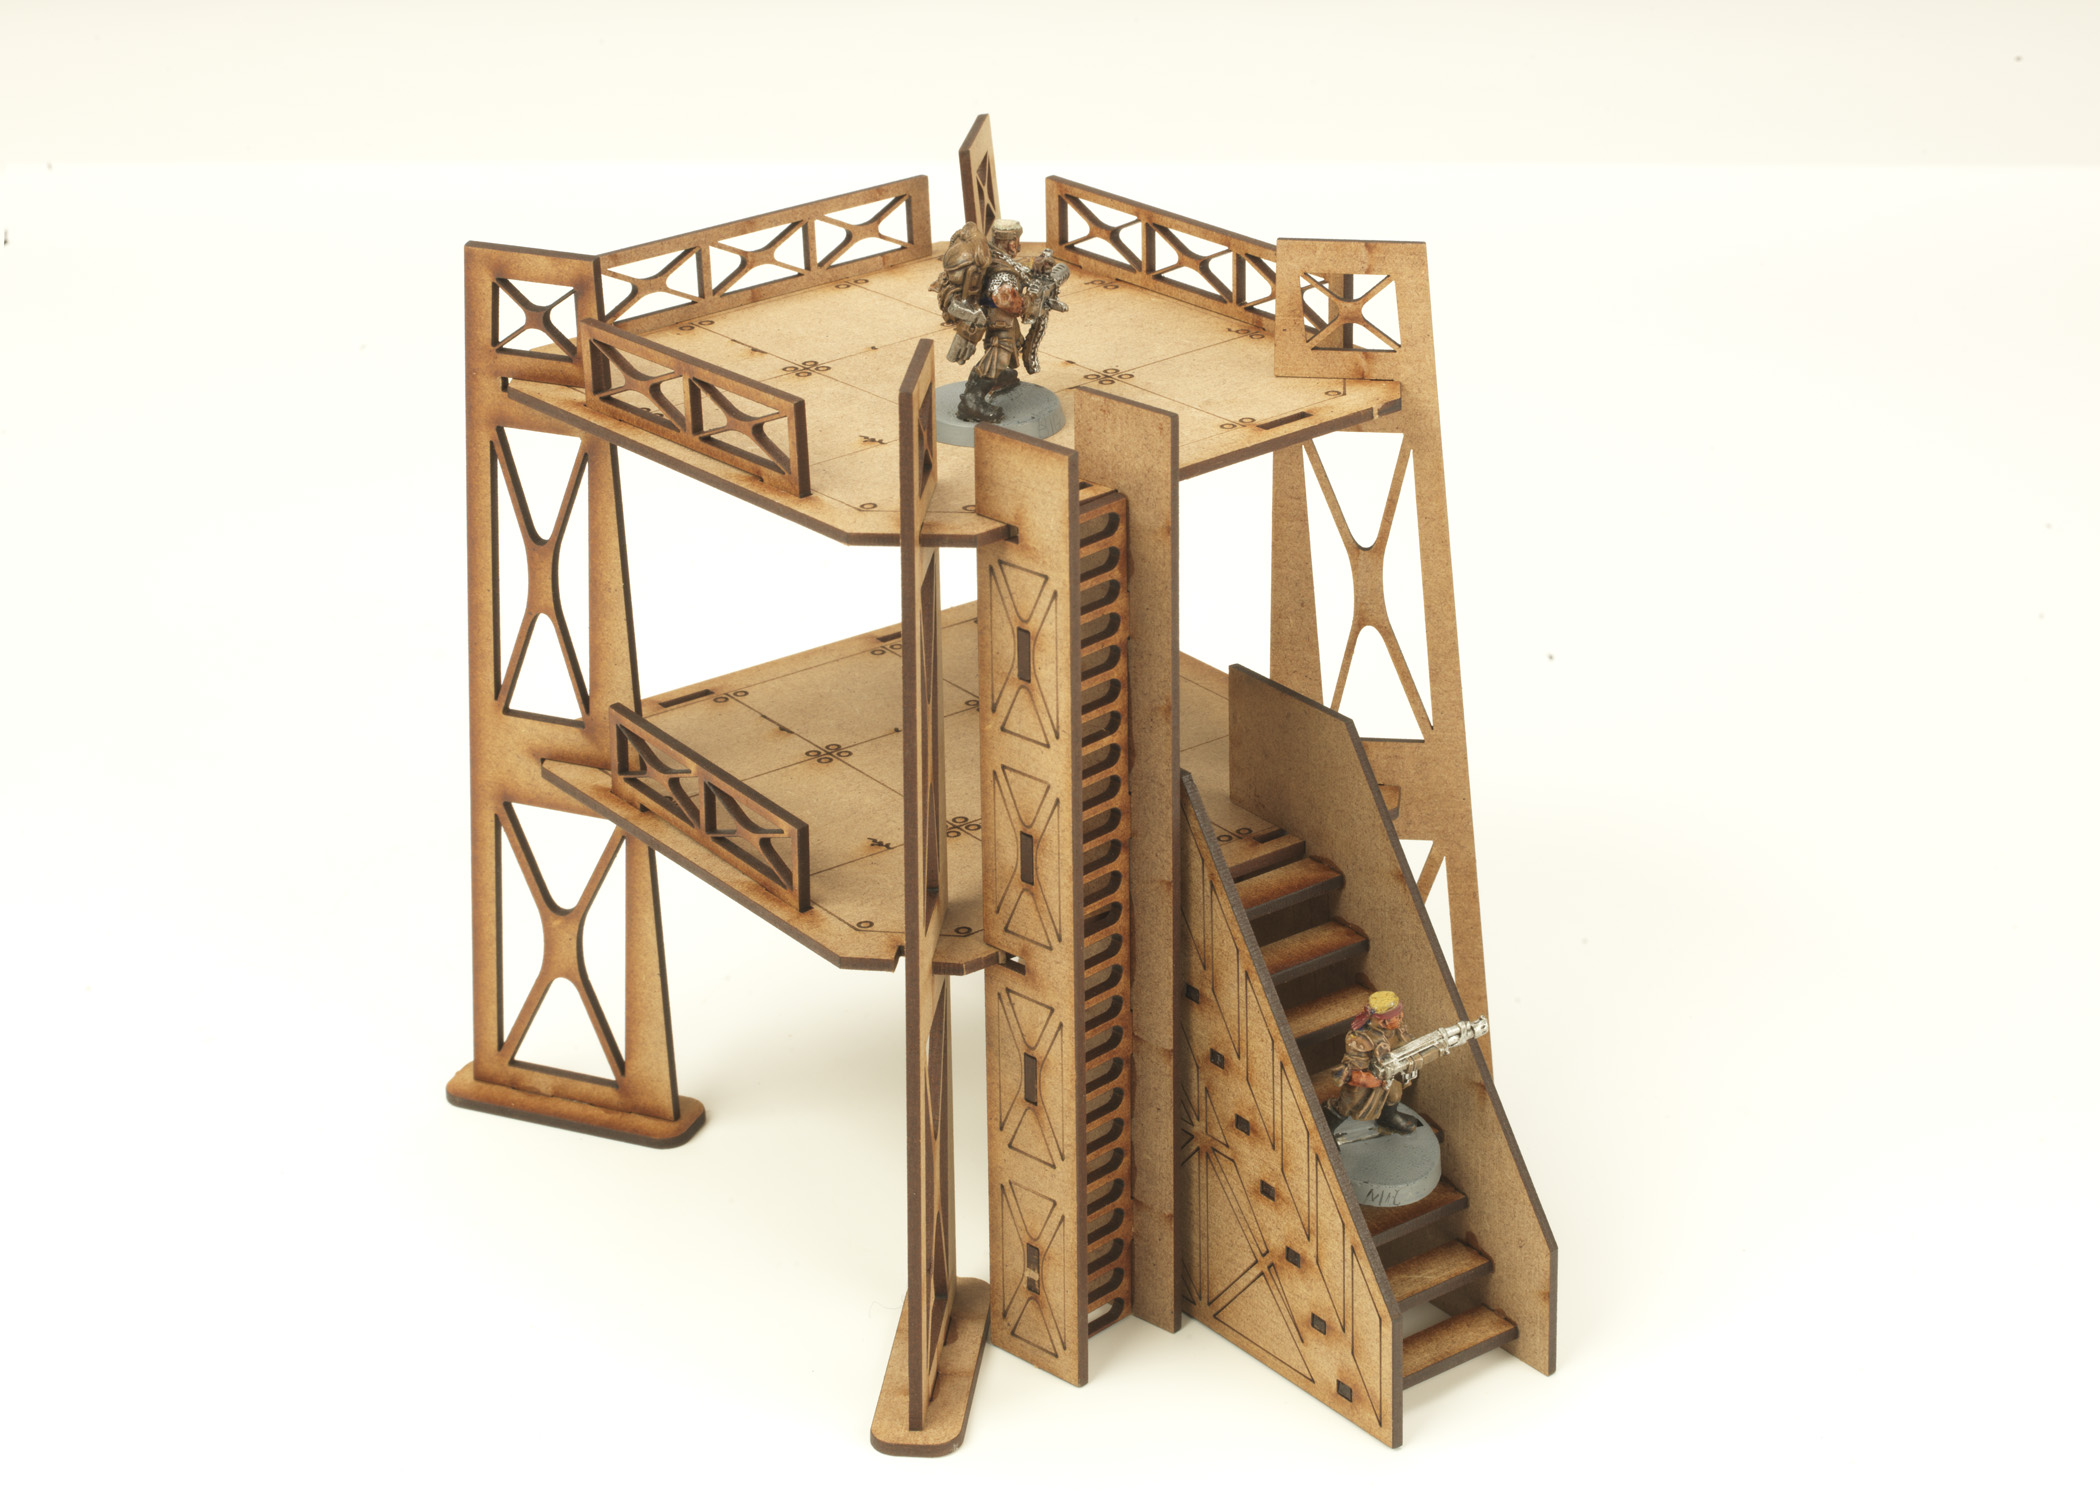 Tower with 1 x 1 storey etched stairs ladder wargames for Stair tower